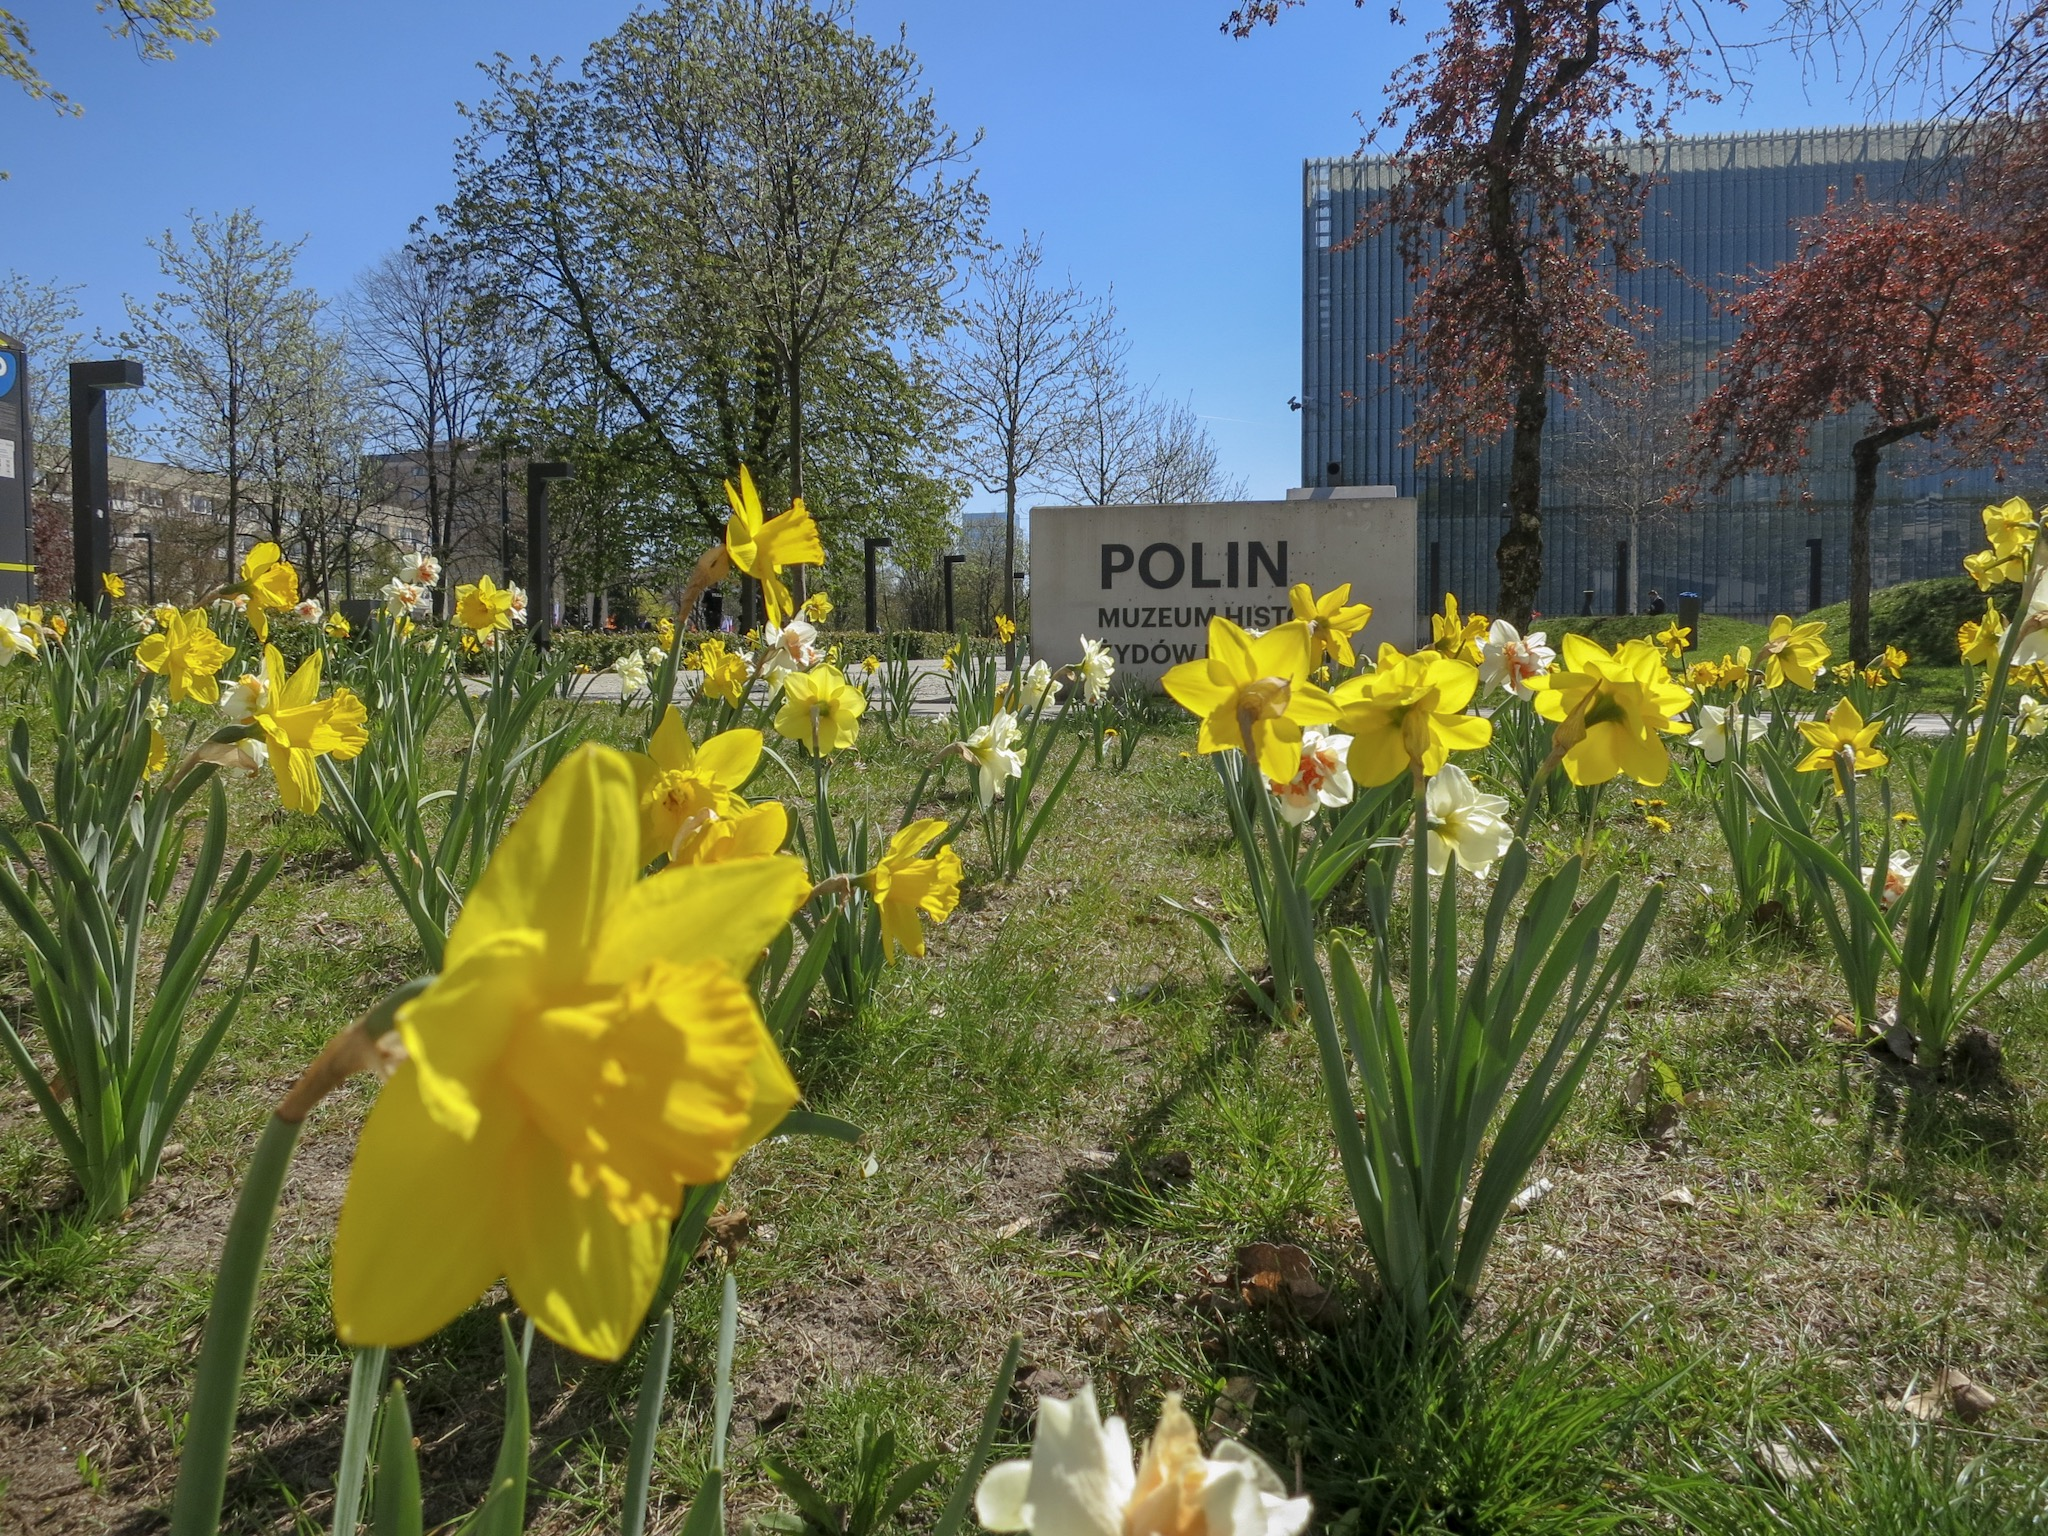 Daffodils outside the Polin, the Museum of the History of the Jews in Poland